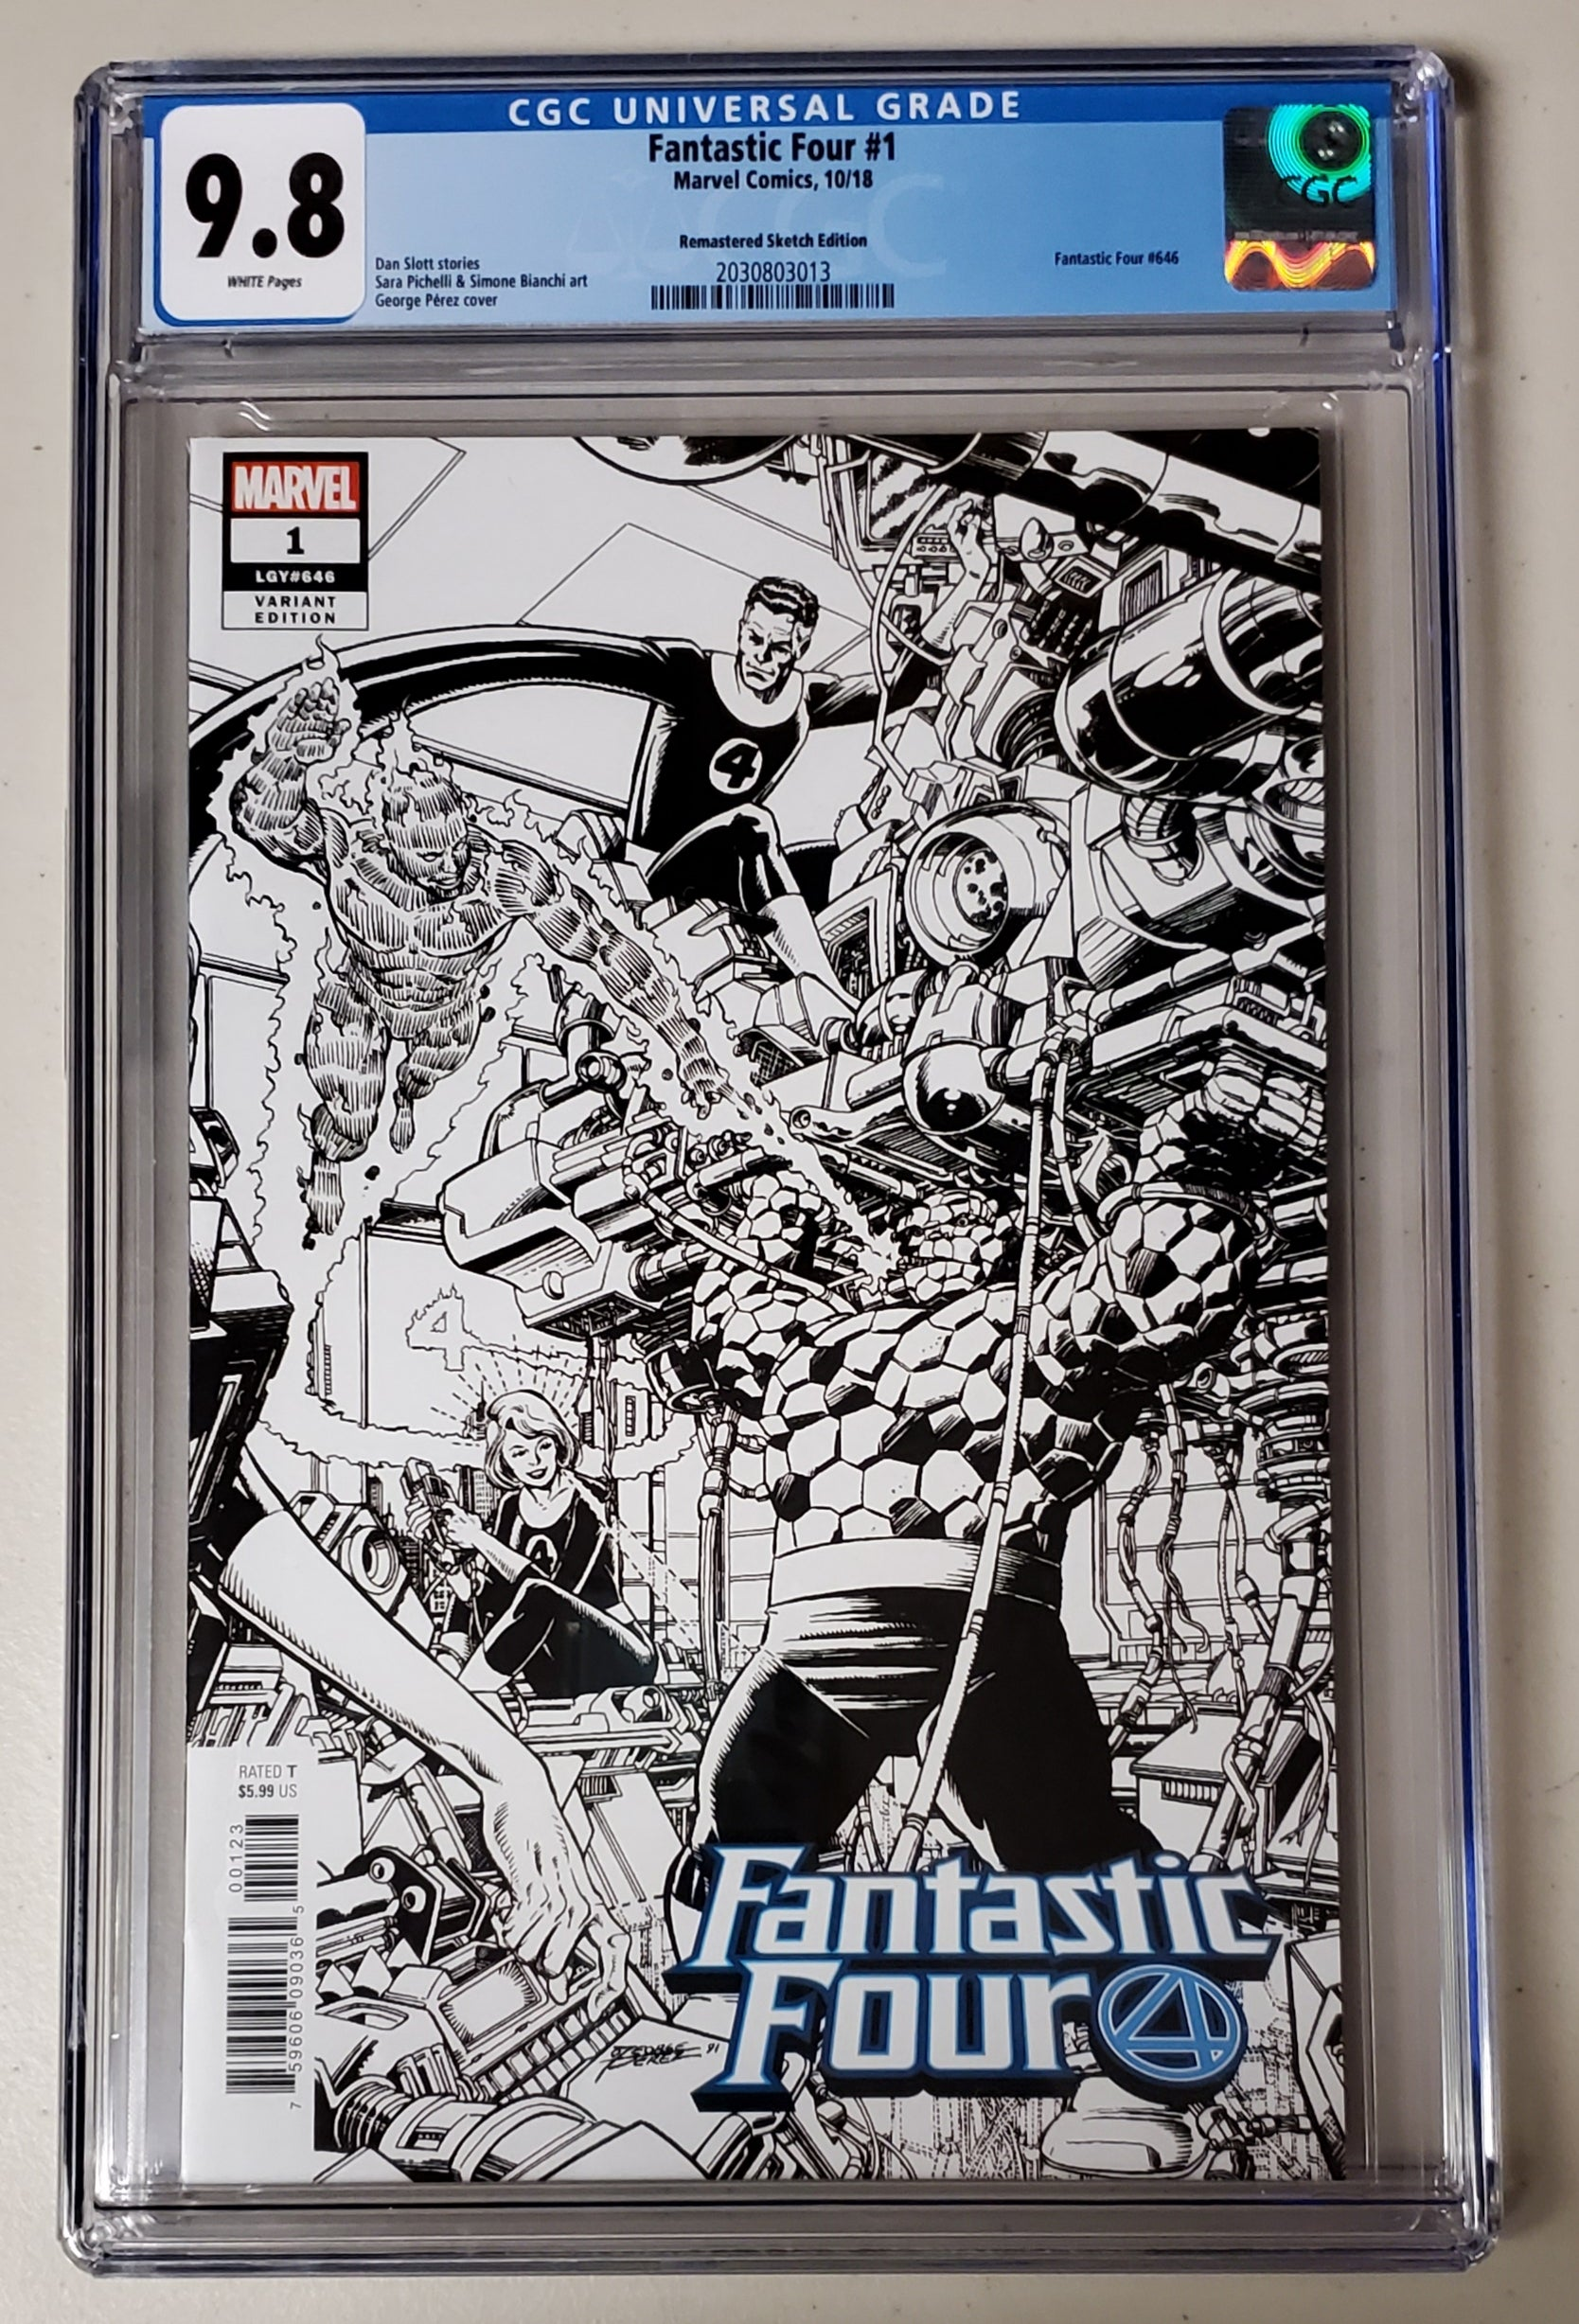 9.8 CGC Fantastic Four #1 1:1000 Remastered B&W Variant Marvel Comics 2018